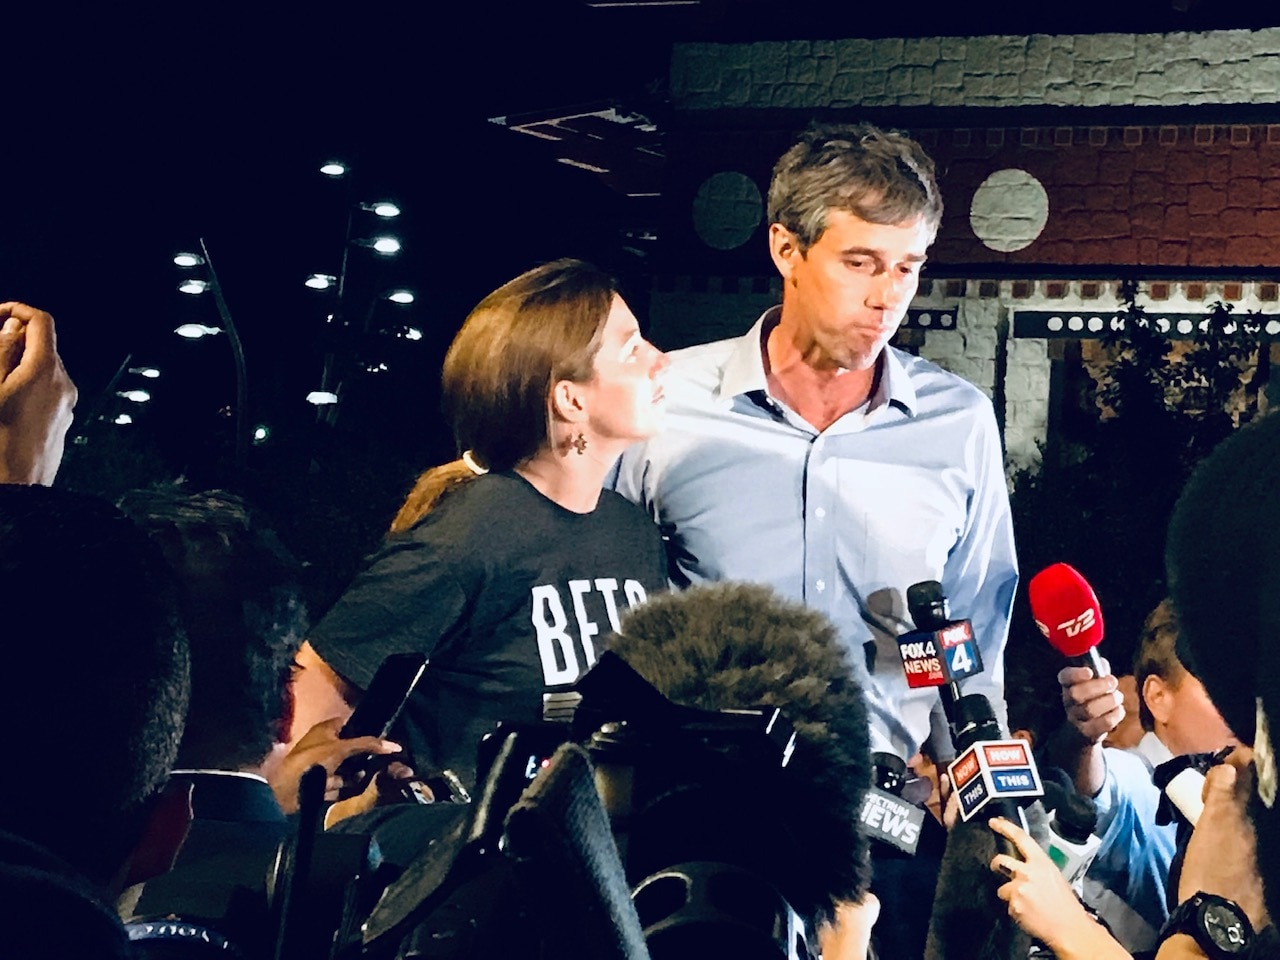 U.S. Rep. Beto O'Rourke returned home Monday, following a statewide campaign and stood alongside his wide Amy at the University of Texas at El Paso.